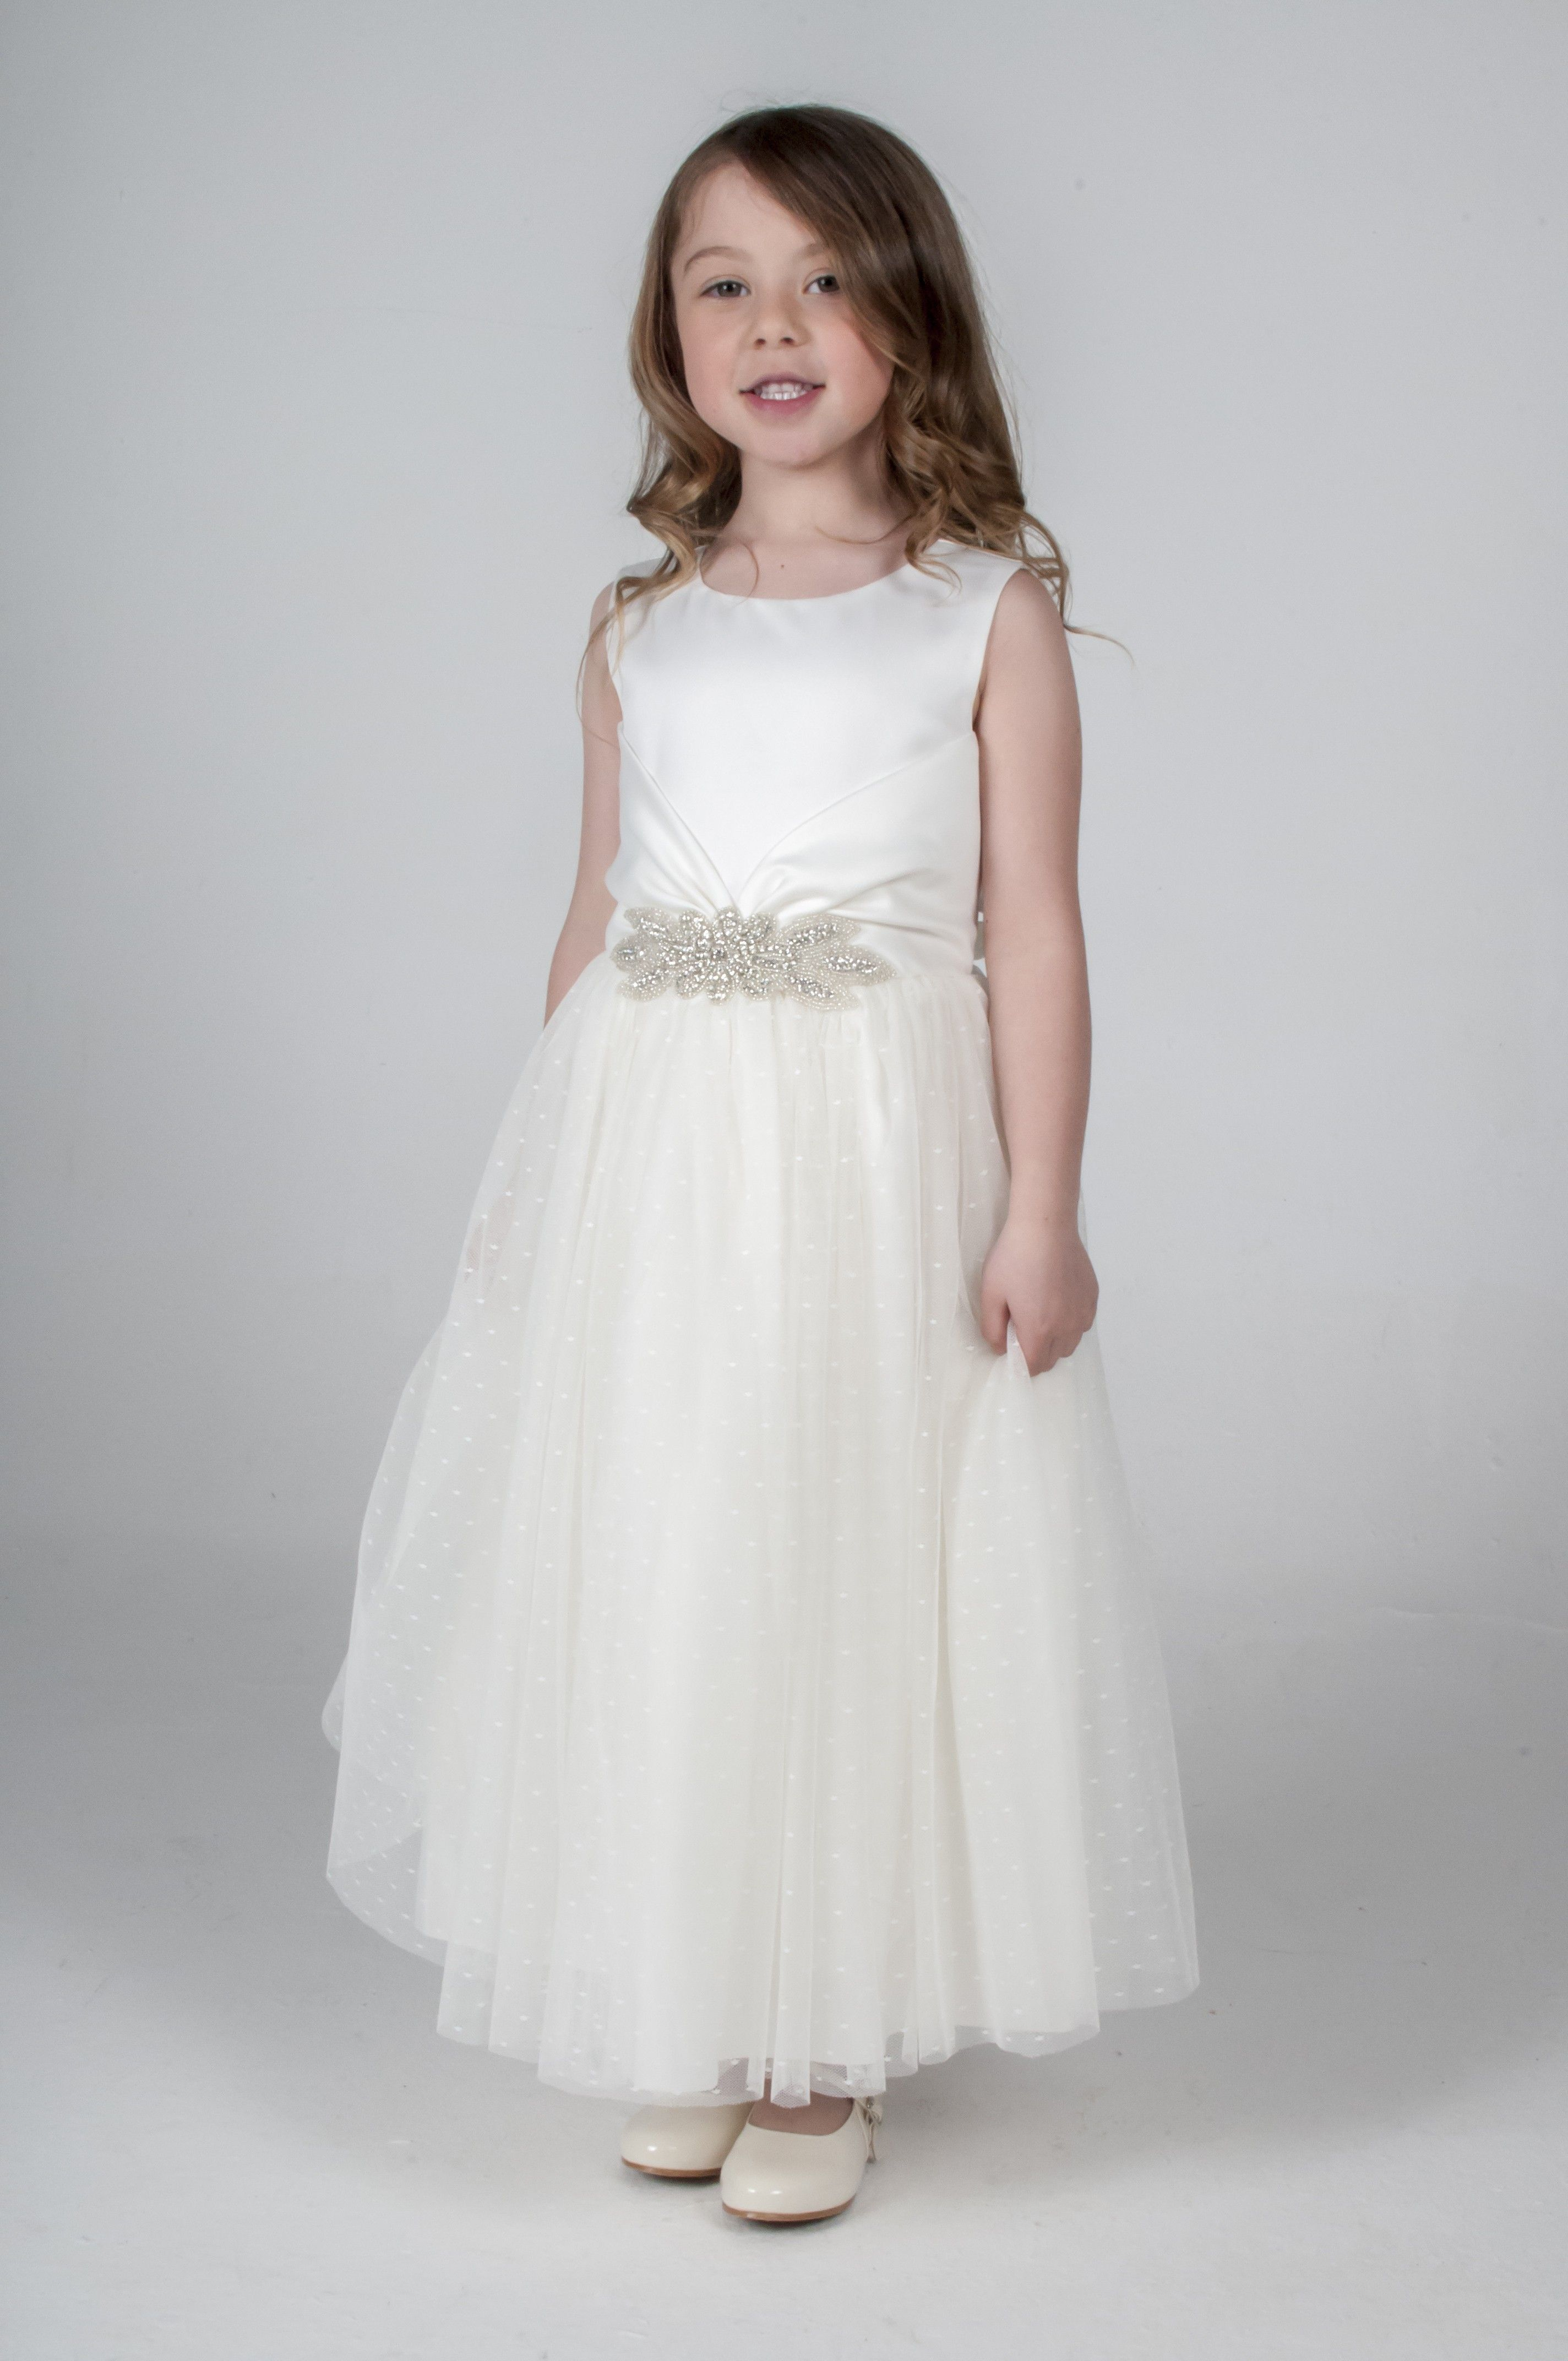 Girls wedding dress  Ivory Diamante Flower Girl Bridesmaid Dress available in other